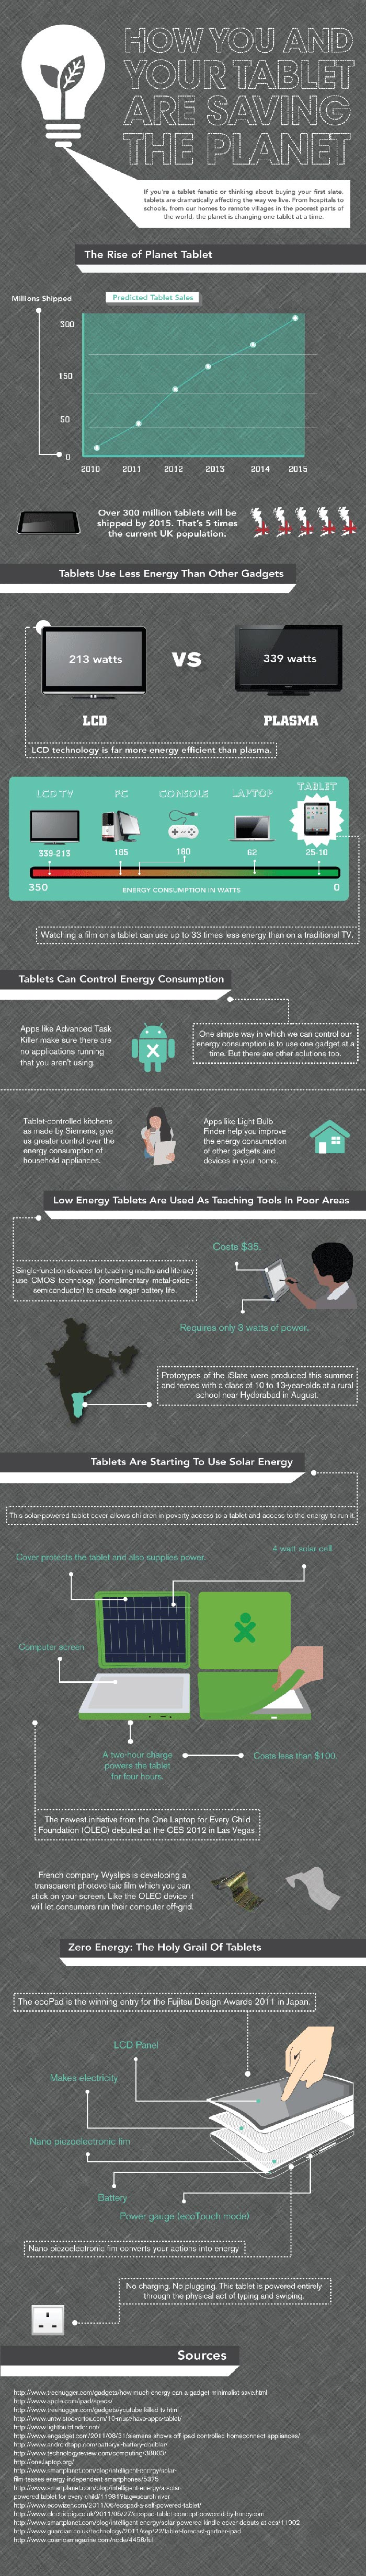 Tablet iPad Energy Efficiency Consumption Infographic